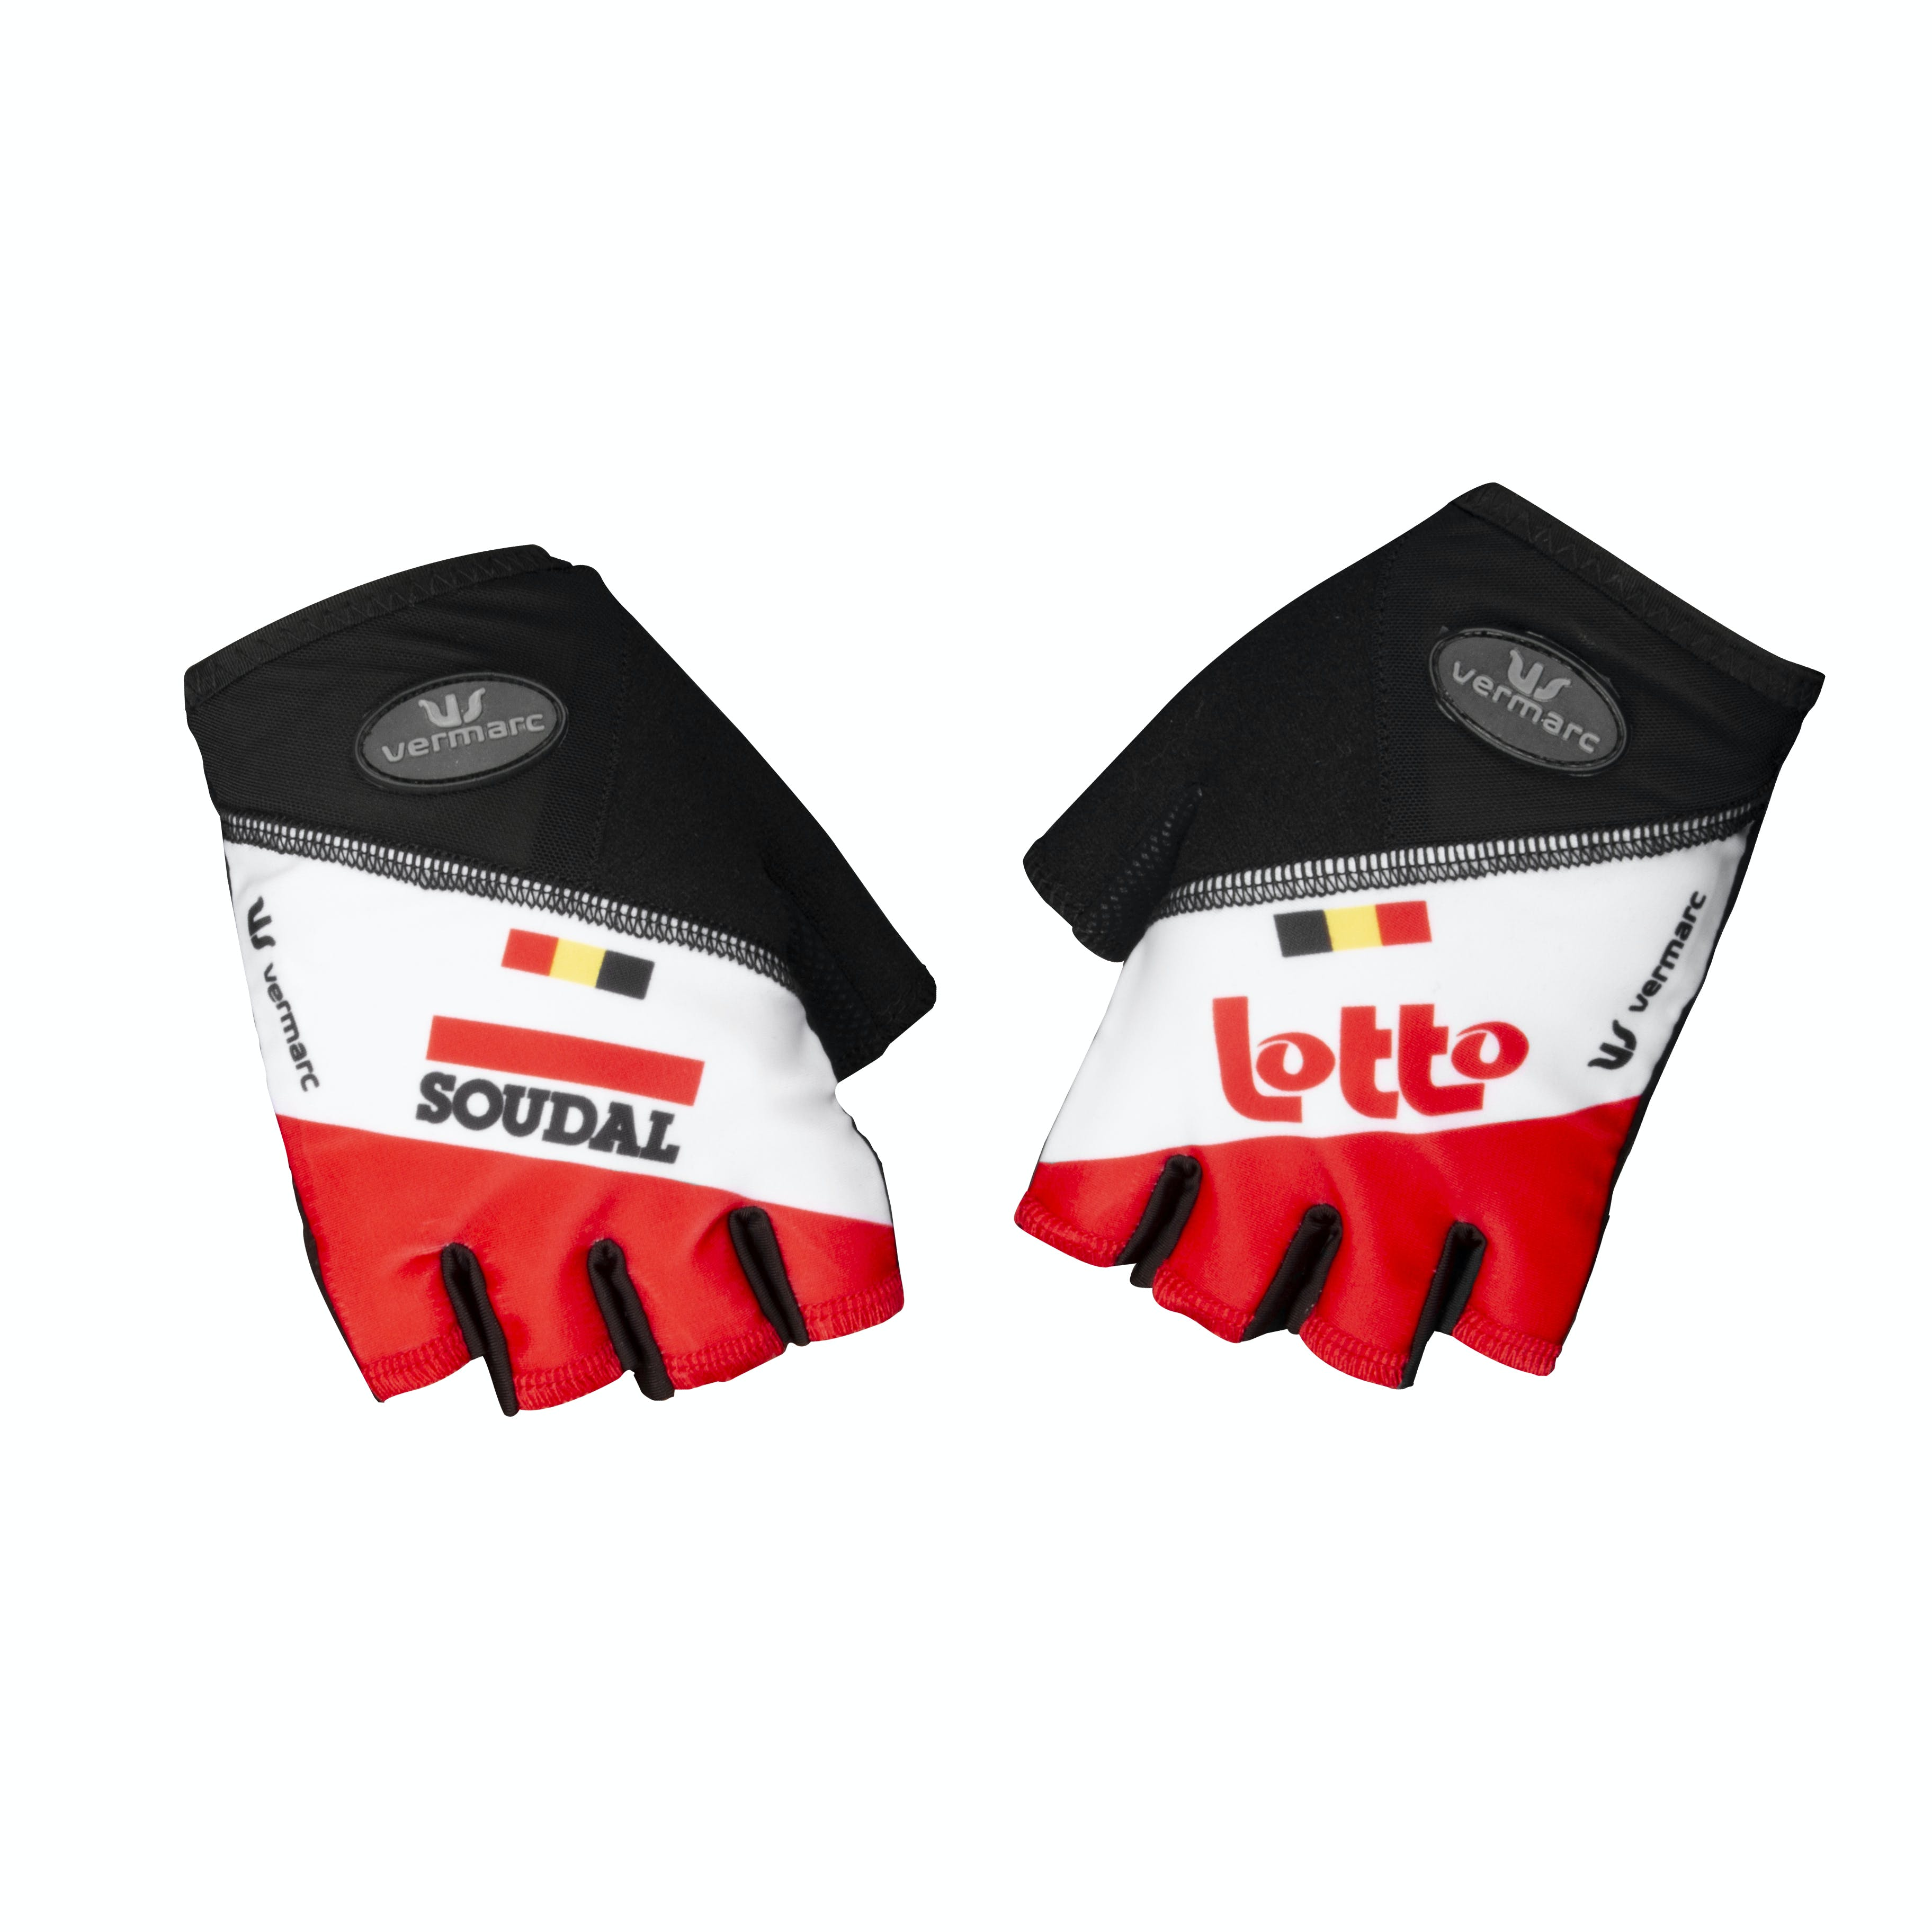 Soudal Lotto 2021 Summer Gloves